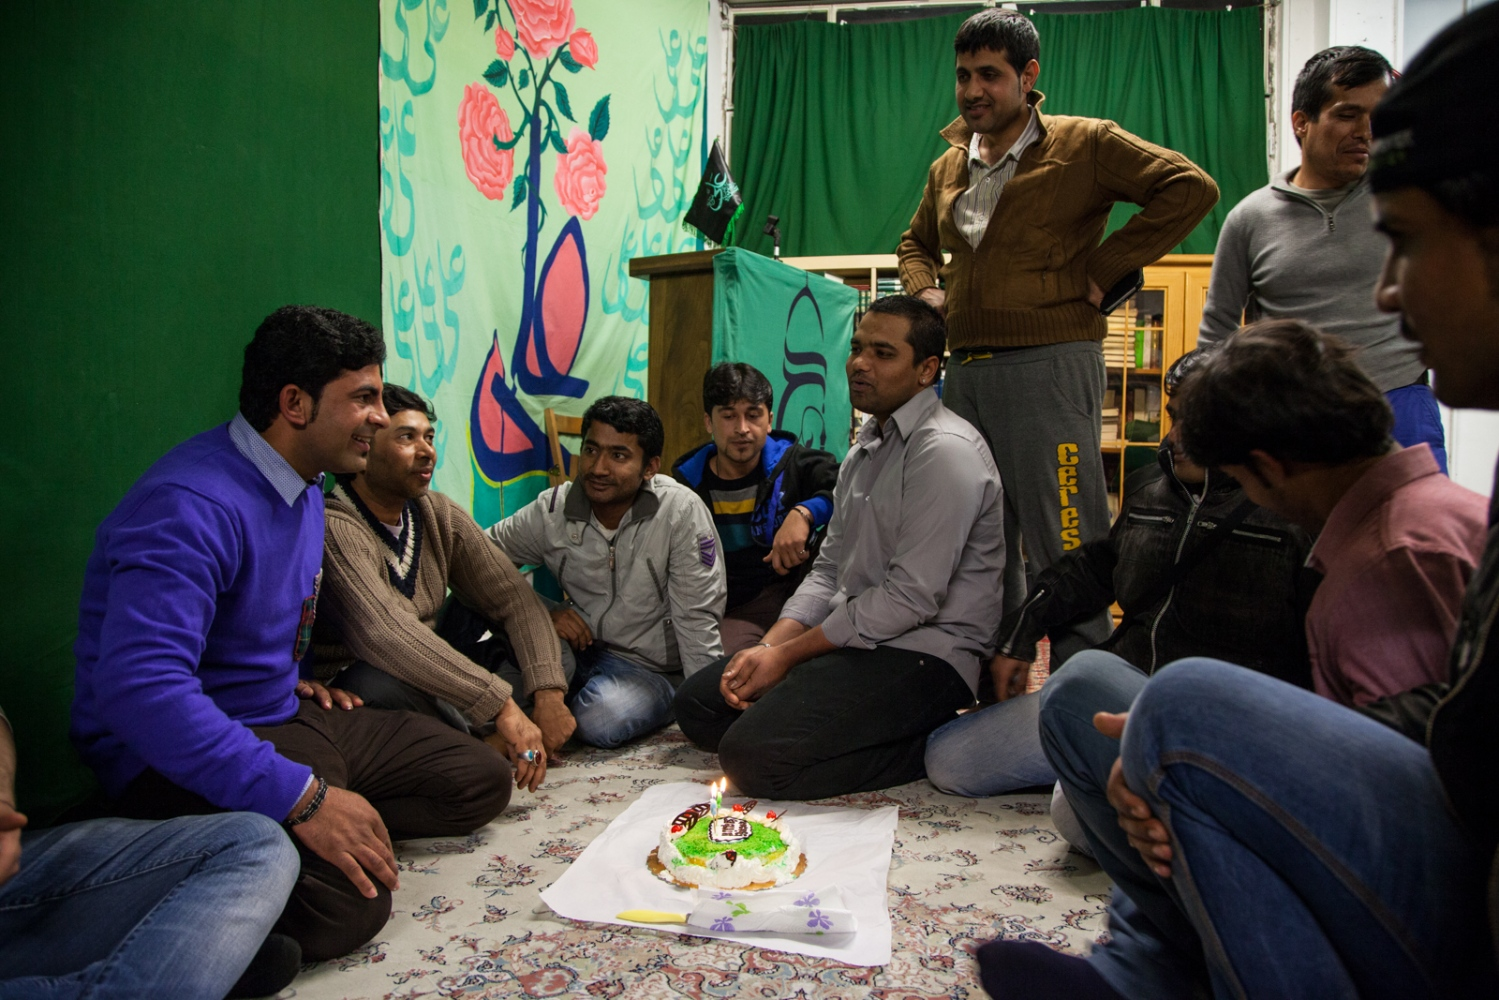 Jan. 10, 2015 - Shia Muslim gather for a birthday celebration at the Islamic Centre Imam Mahdi, near Furio Camillo, a neighborhood in the eastern part of Rome. This is the only Shia mosque in the city.